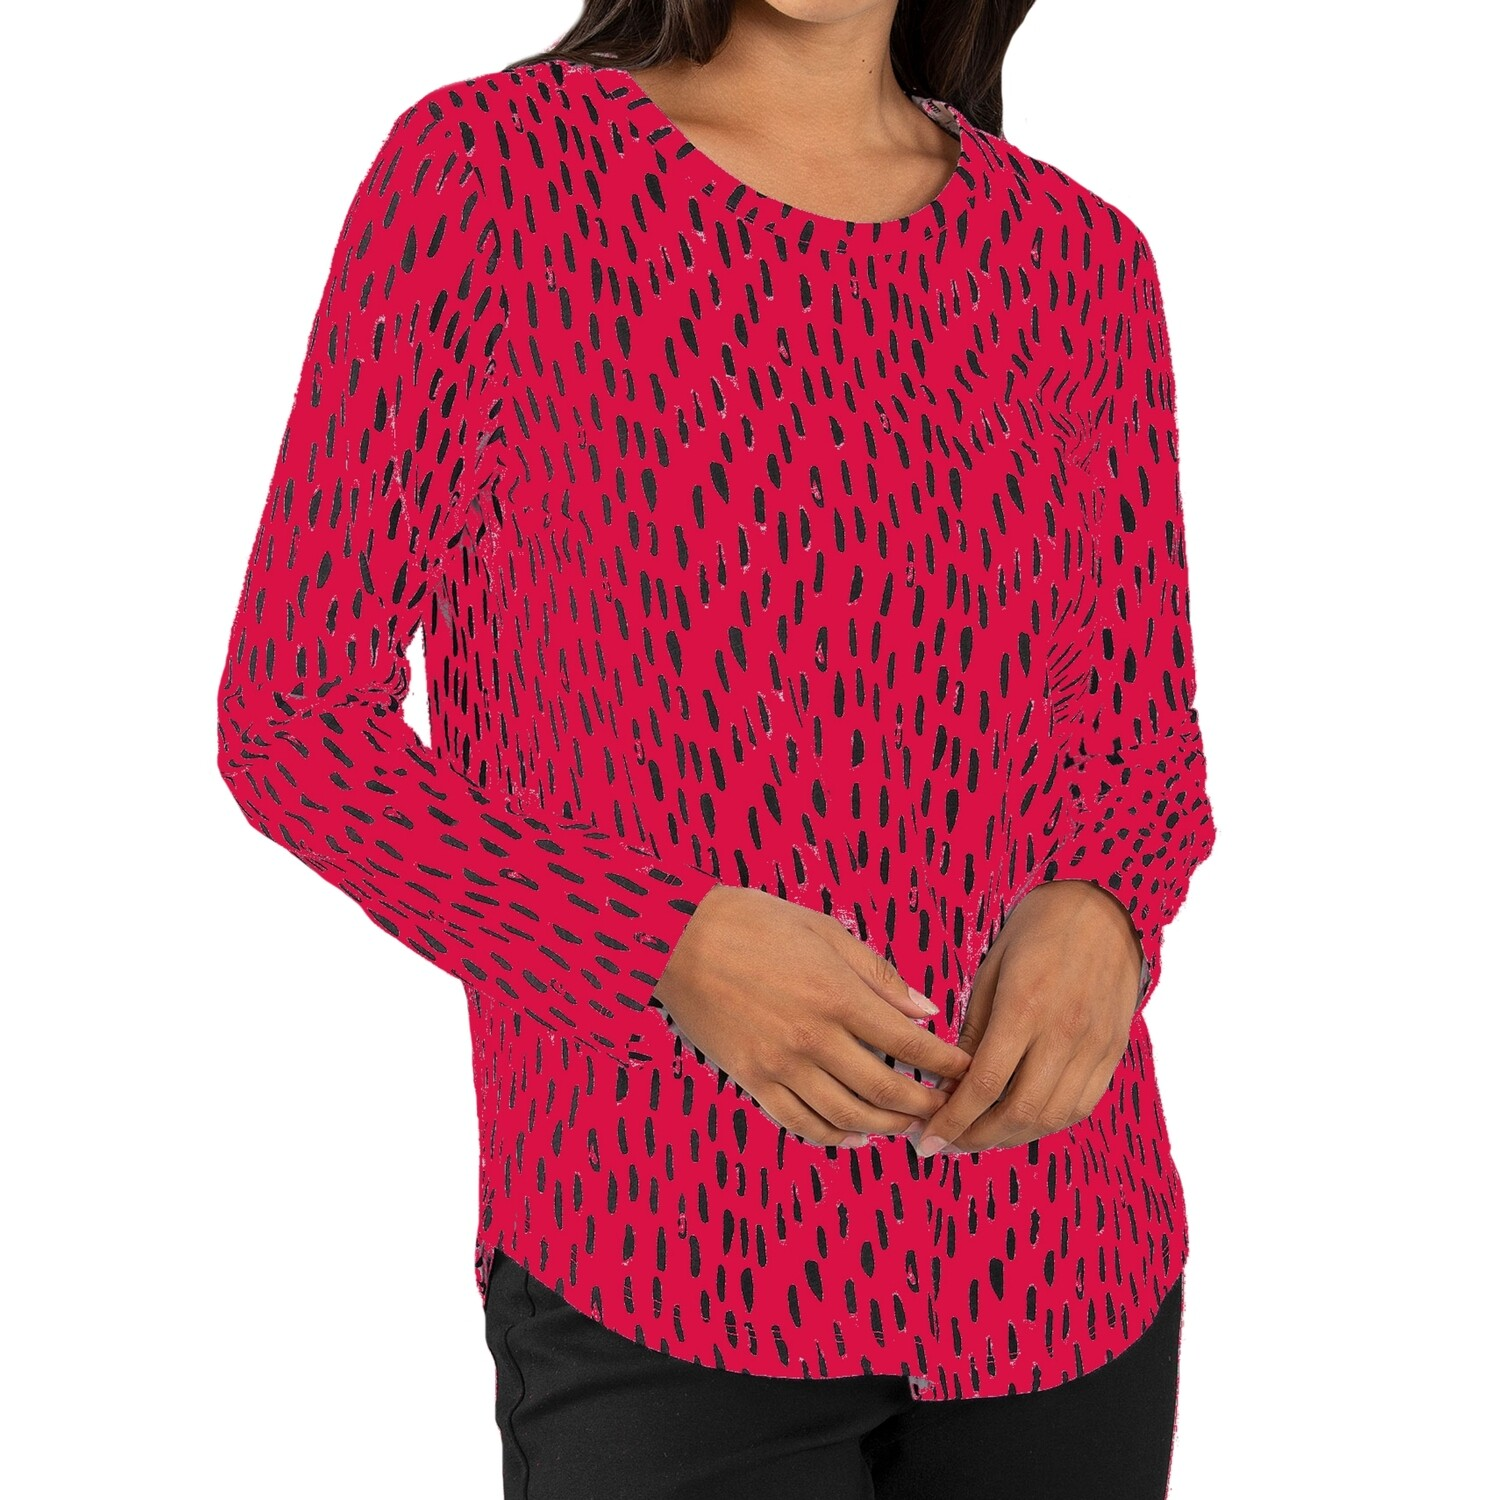 Abstract Ruby Red Print Pure Cotton Top by Yarra Trail